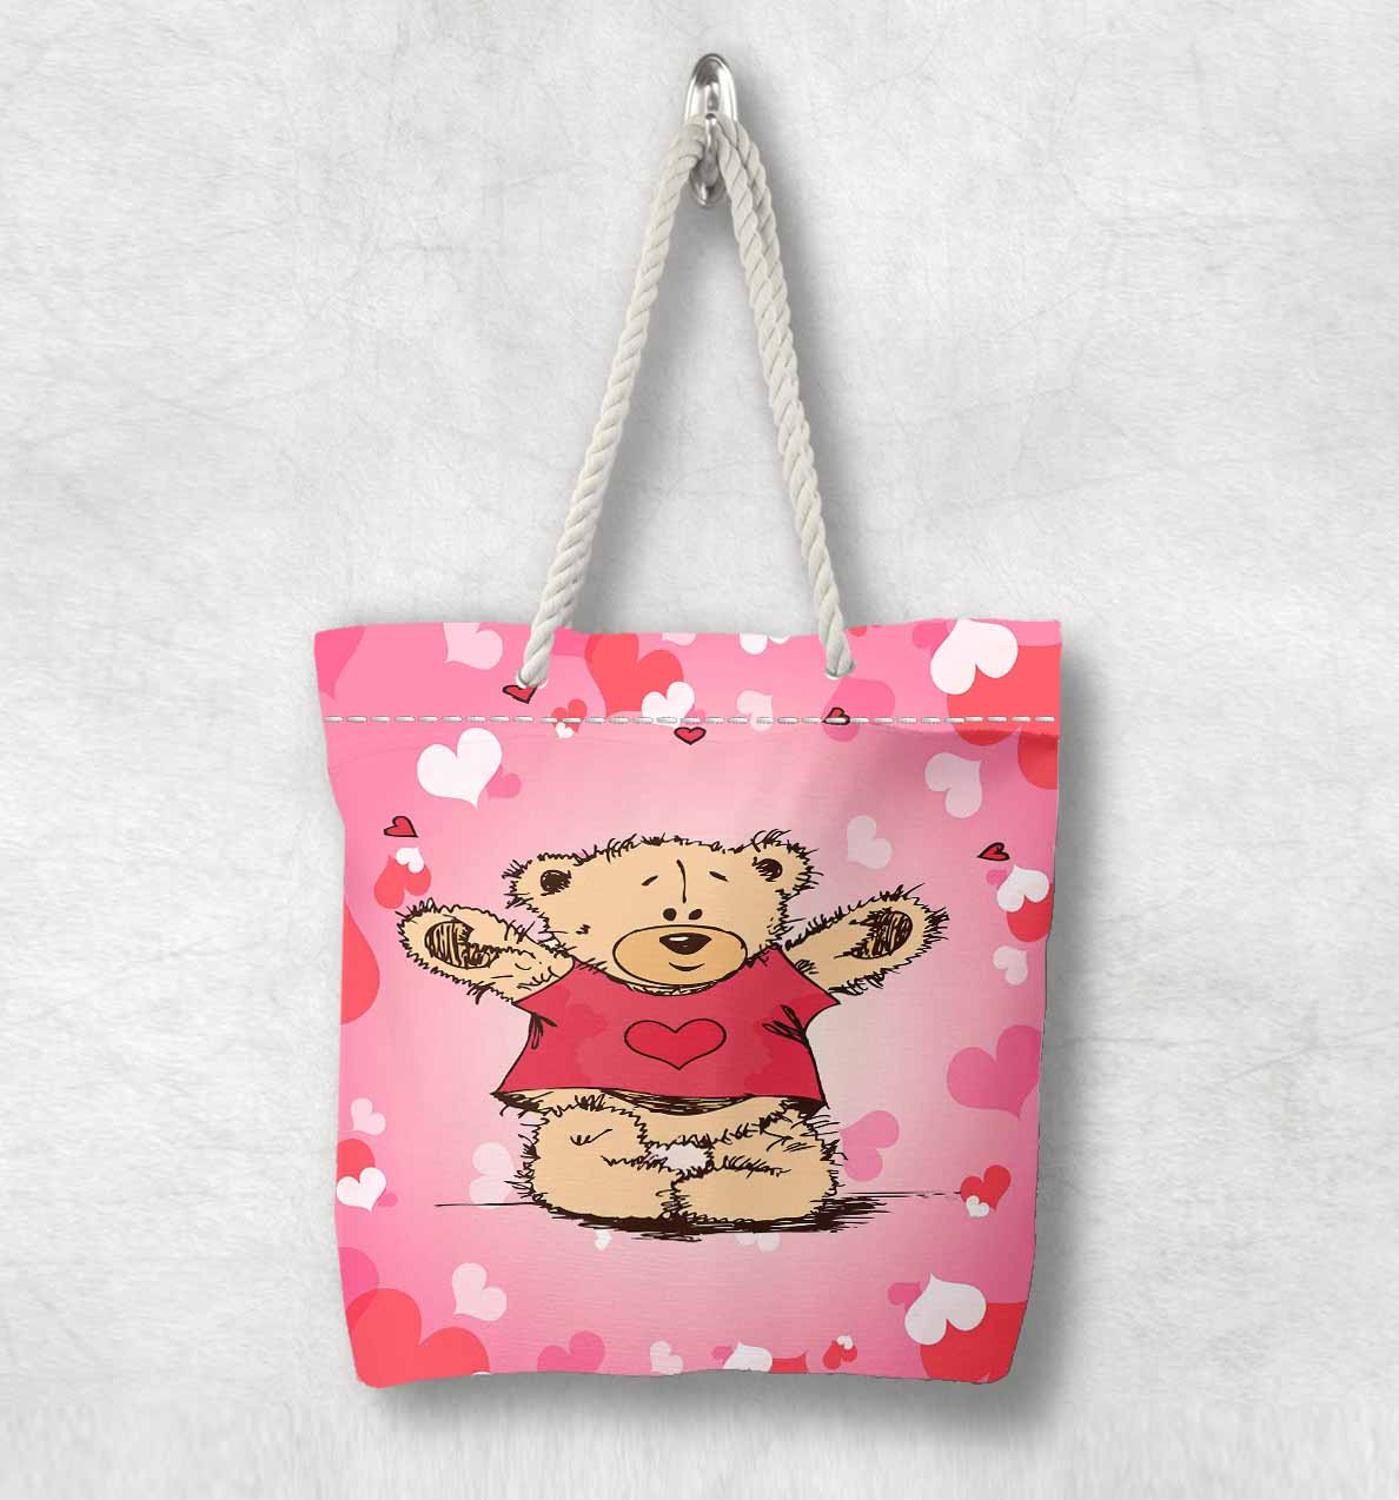 Else Pink White Red Hearts Cute Bears Fashion White Rope Handle Canvas Bag  Cartoon Print Zippered Tote Bag Shoulder Bag